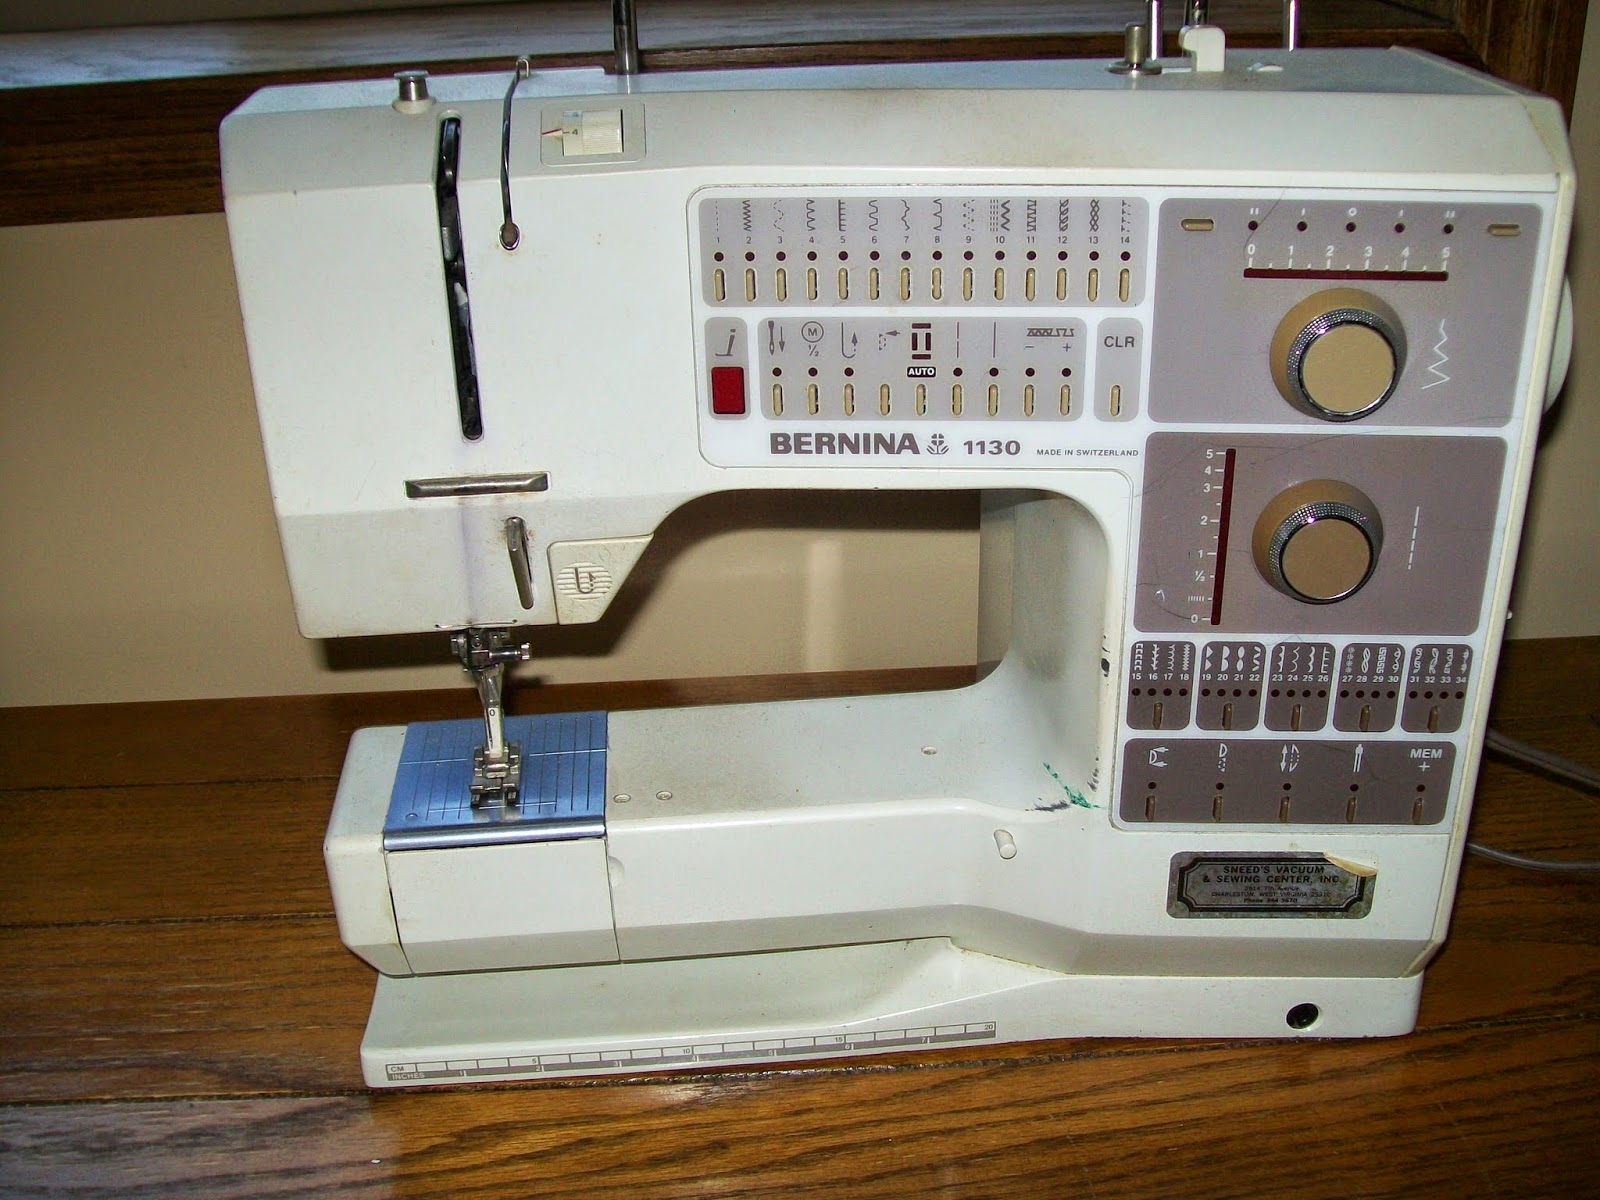 & Sew Much More: My new sewing machine - a Bernina 1130